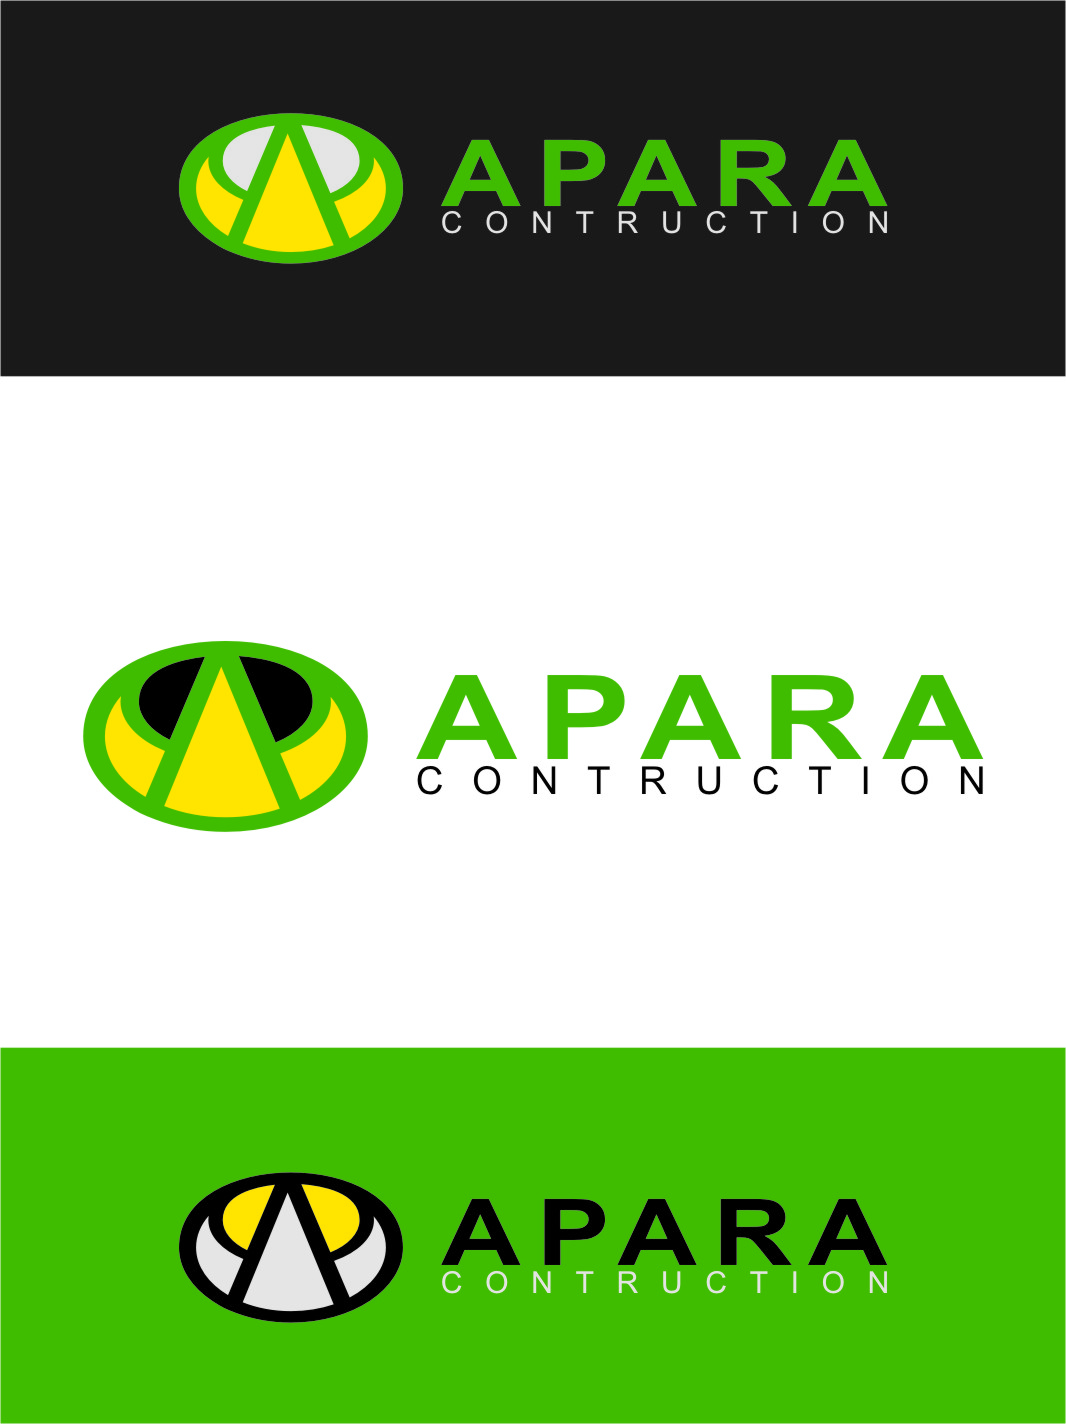 Logo Design by Ngepet_art - Entry No. 35 in the Logo Design Contest Apara Construction Logo Design.